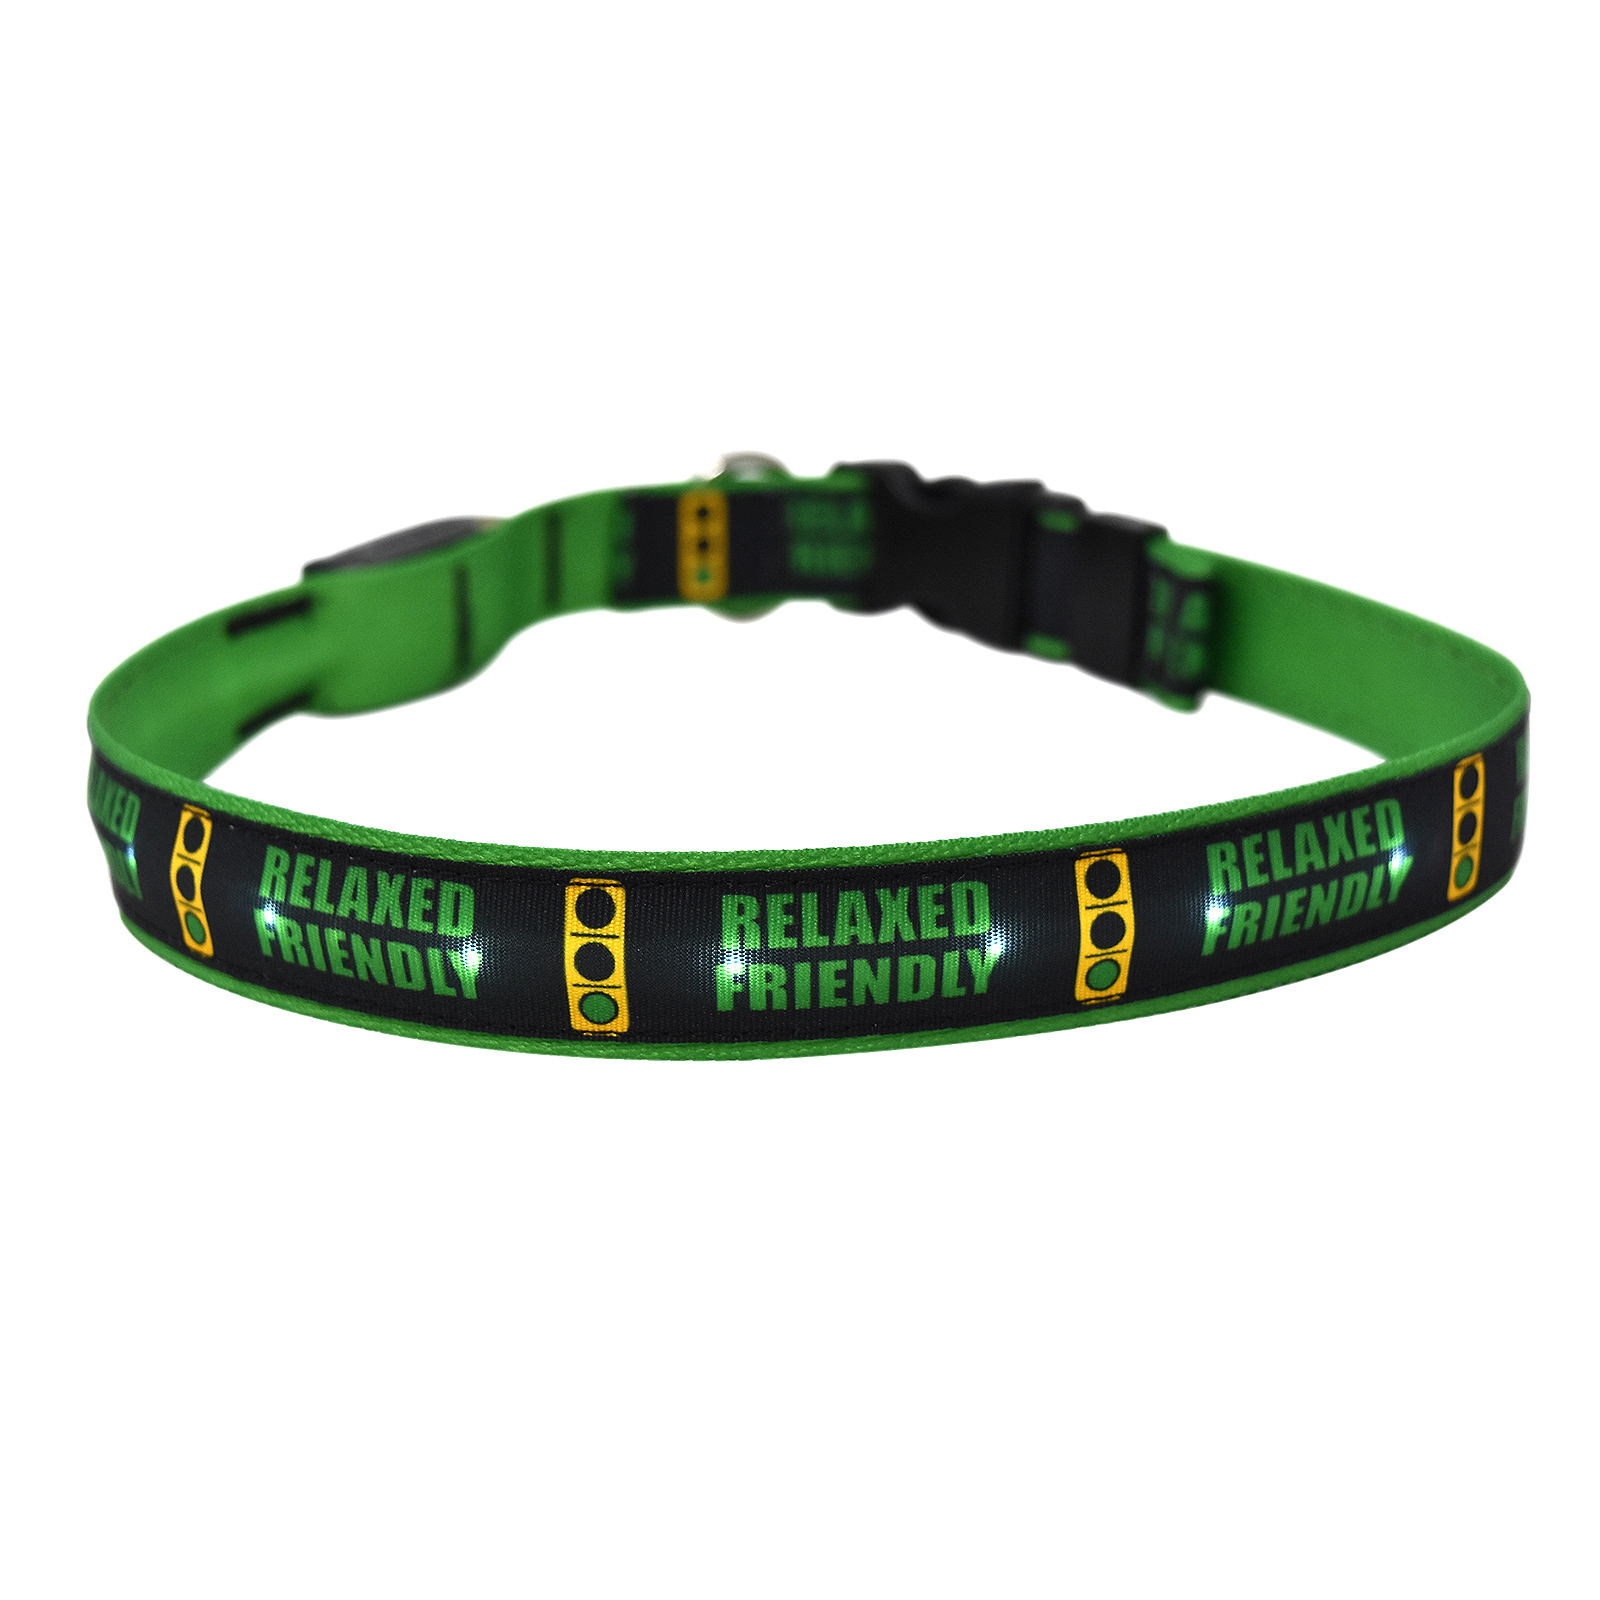 Caution Relaxed Friendly Light ORION LED Dog Collar